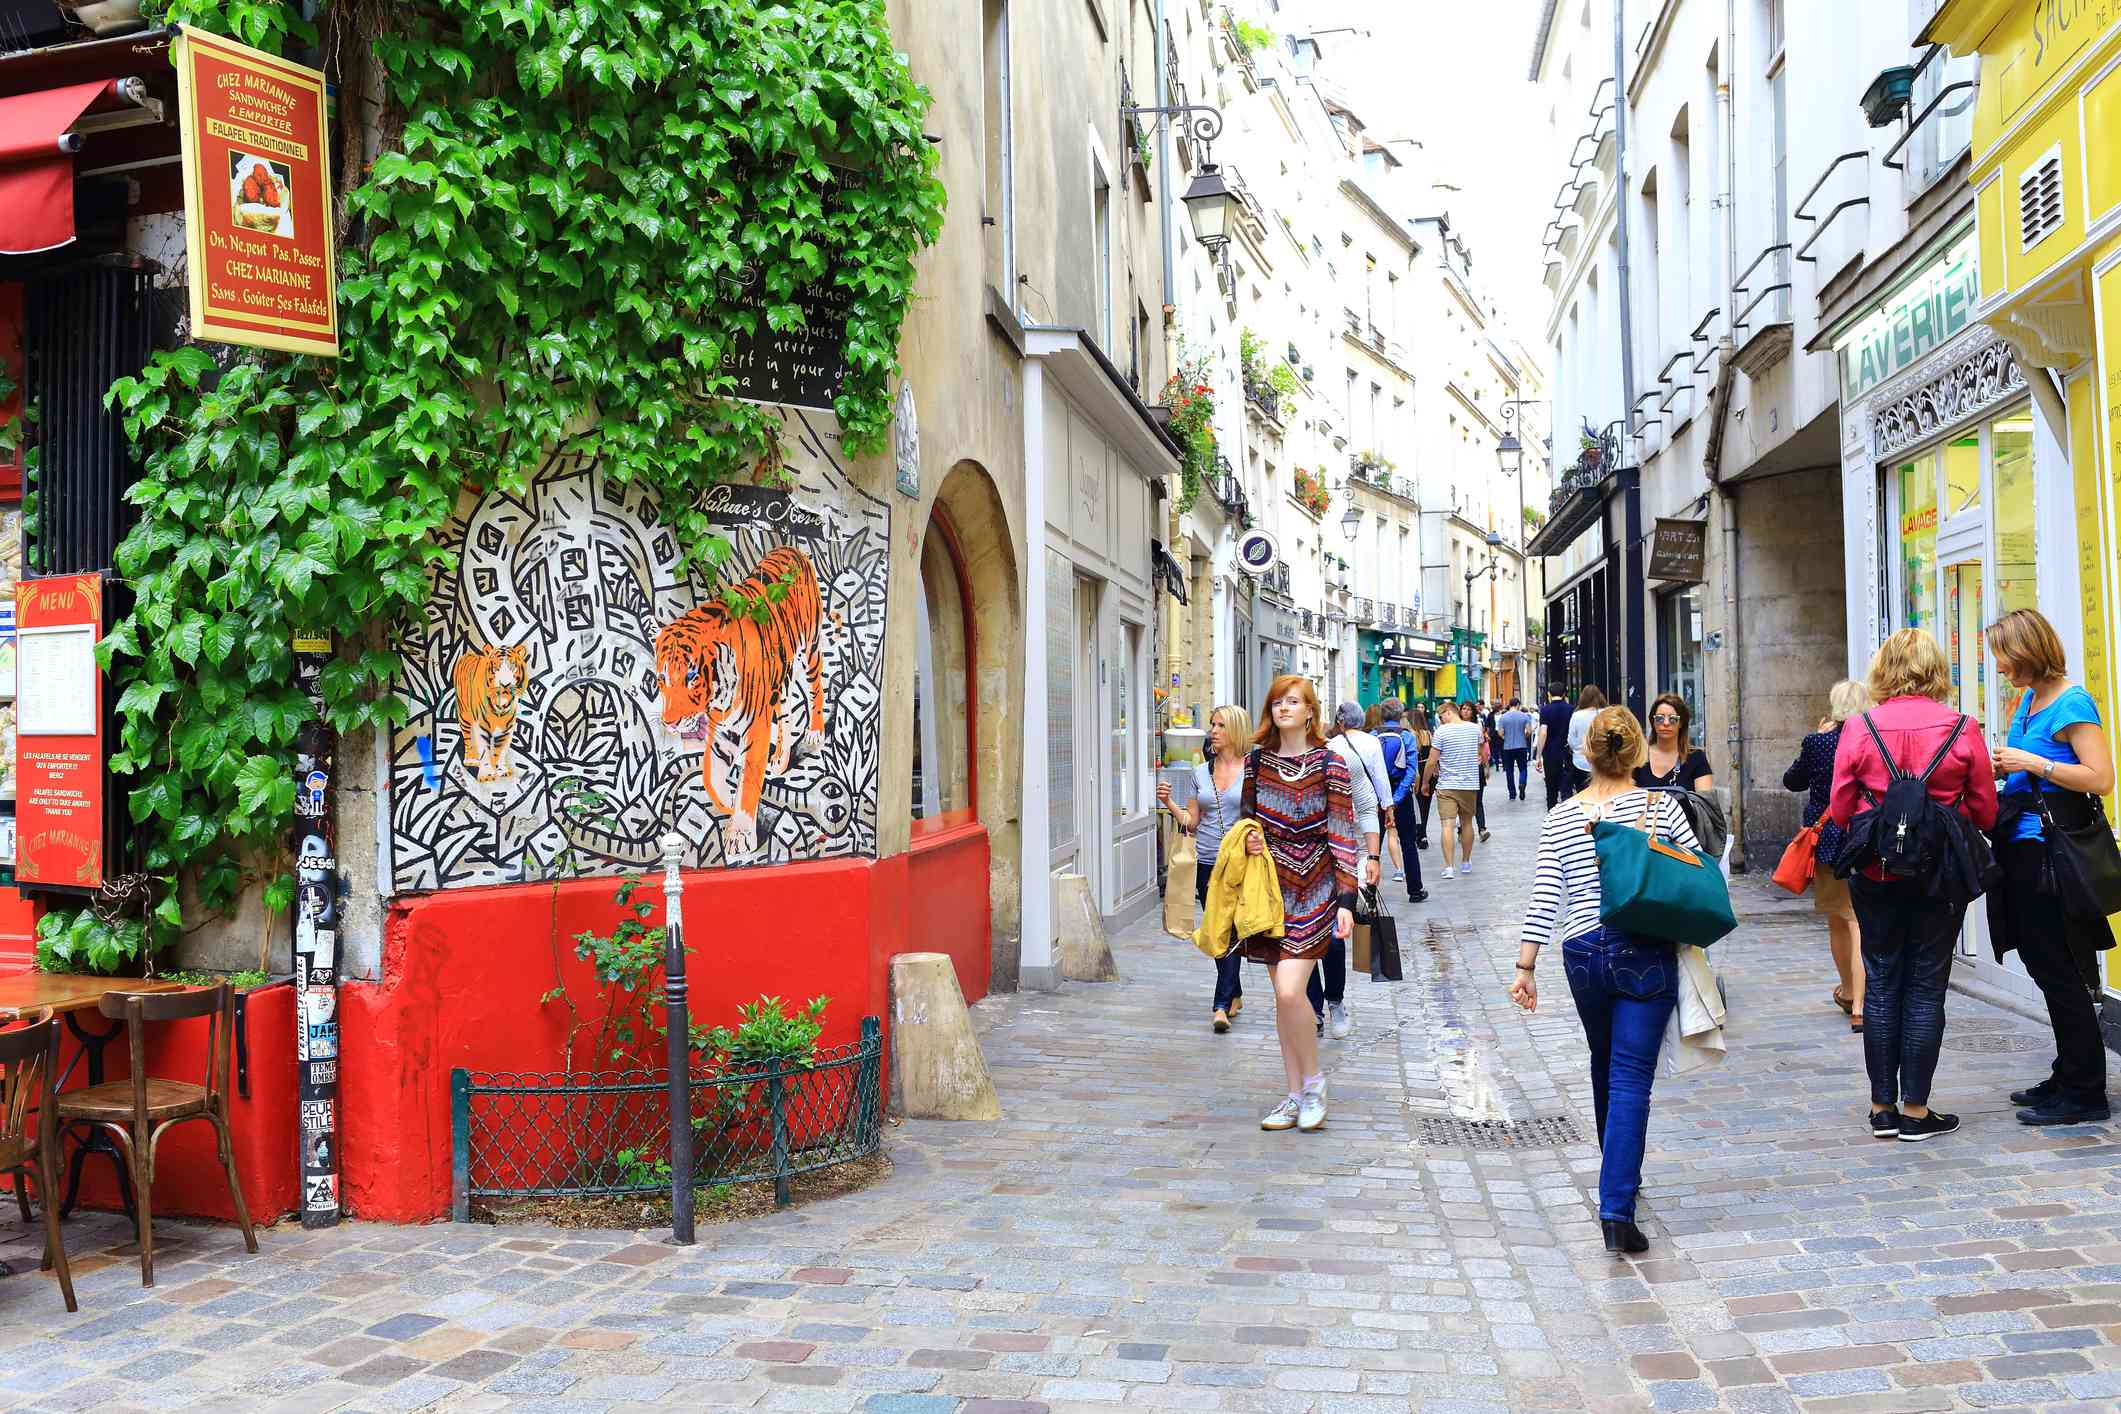 Marais district-- These are the top things to do in the Paris neighborhood, from museums to shopping and eating out